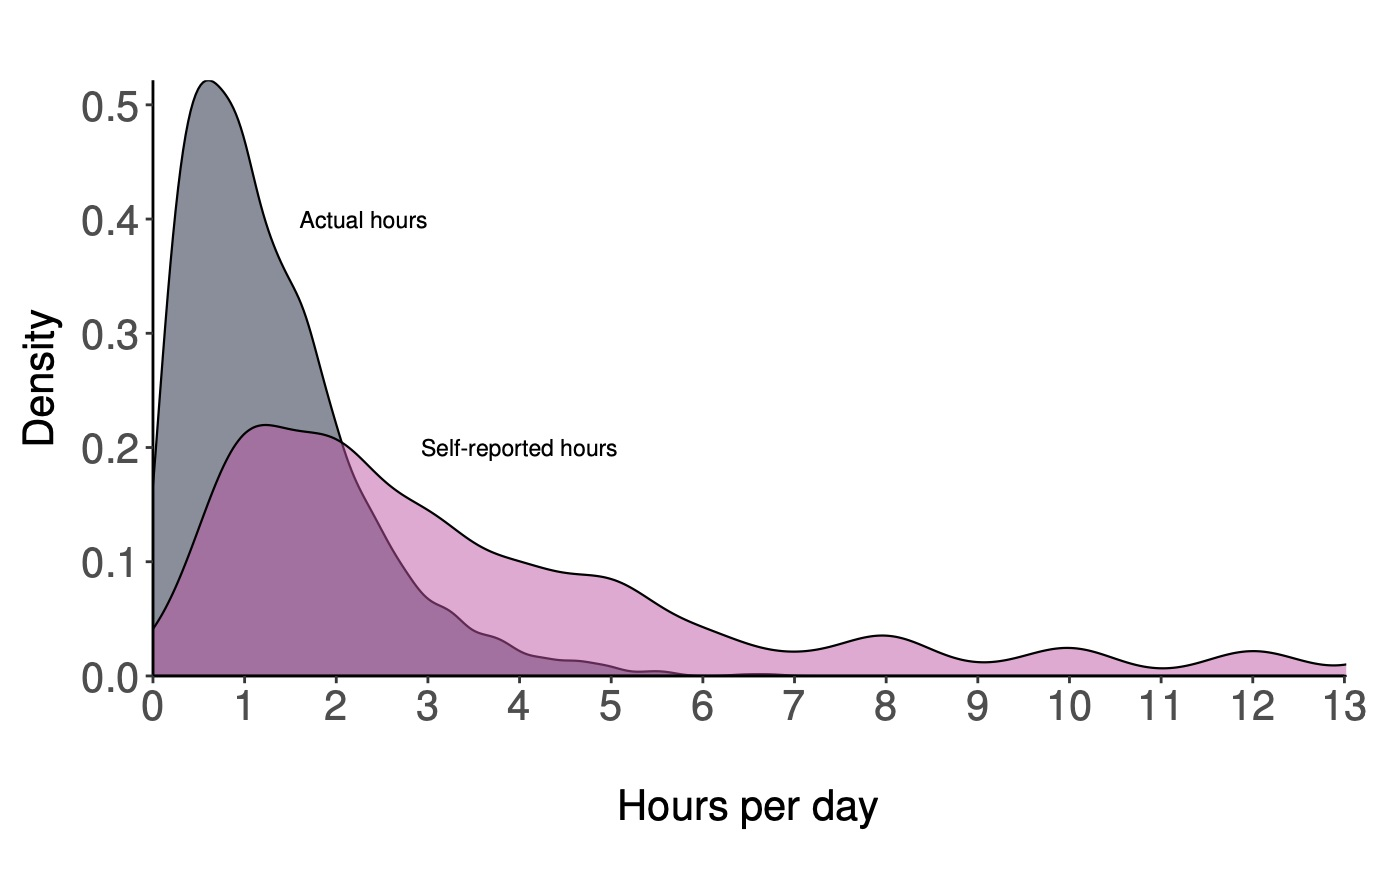 Facebook's Own Study Shows, Most Users Overestimate Their Time Spent On Social Media